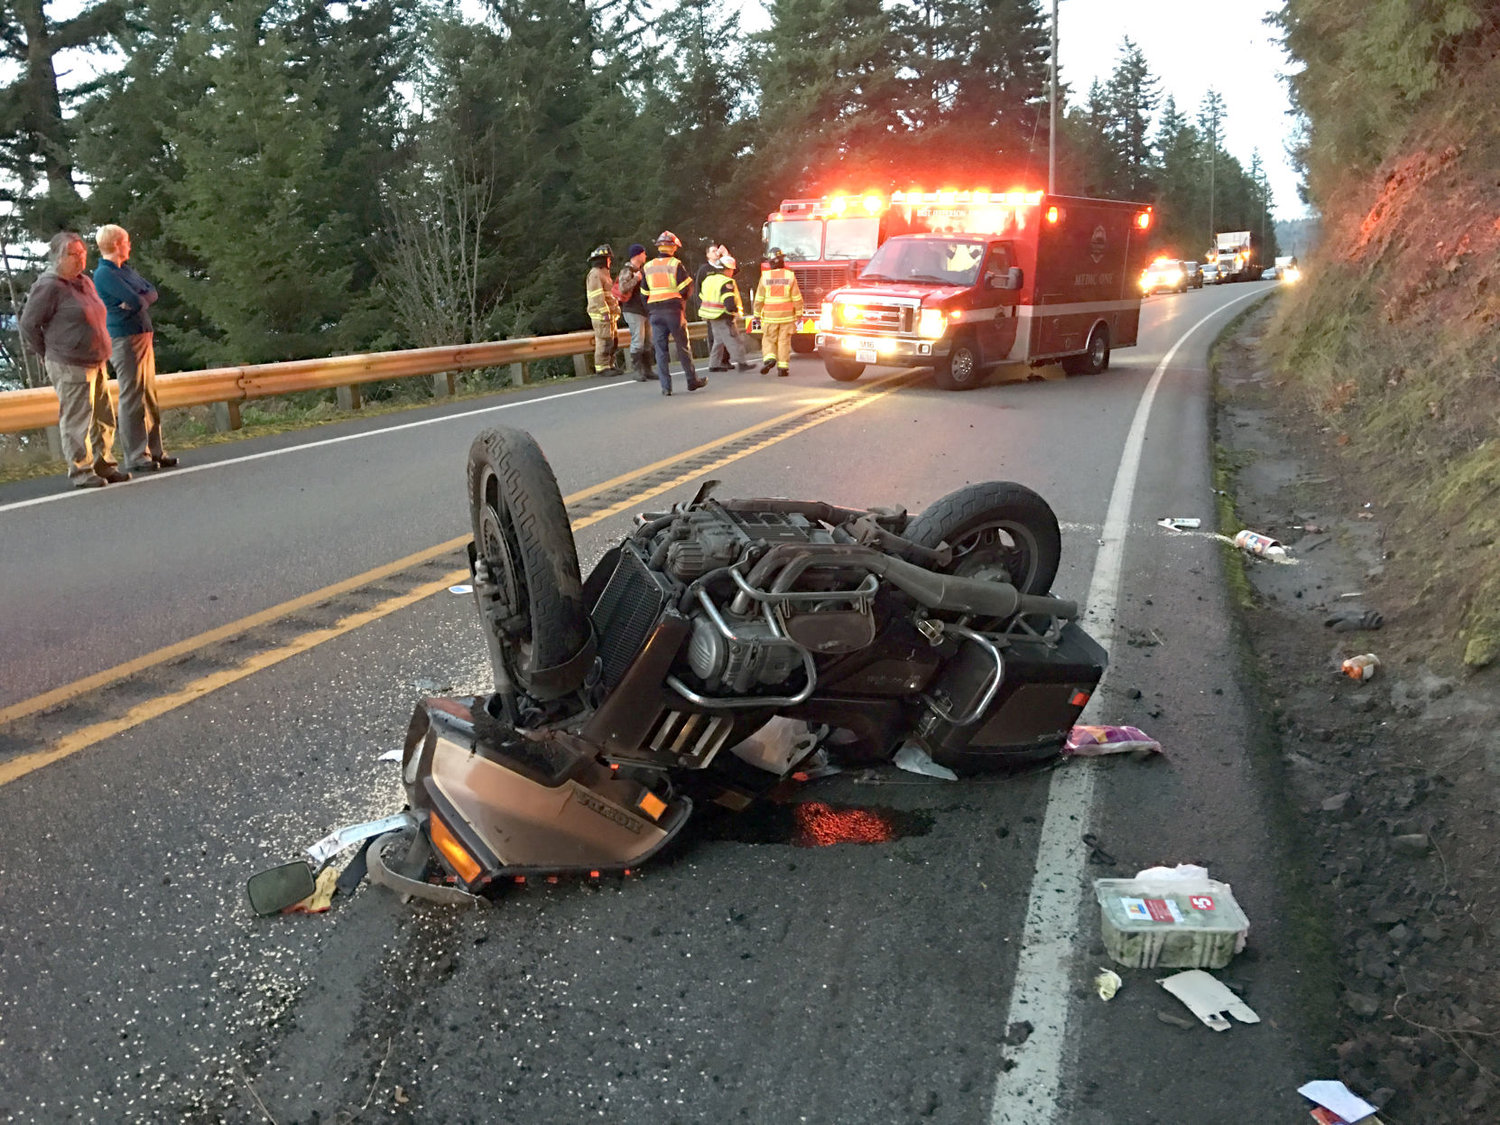 Motorcyclist flown to Harborview after accident | Port